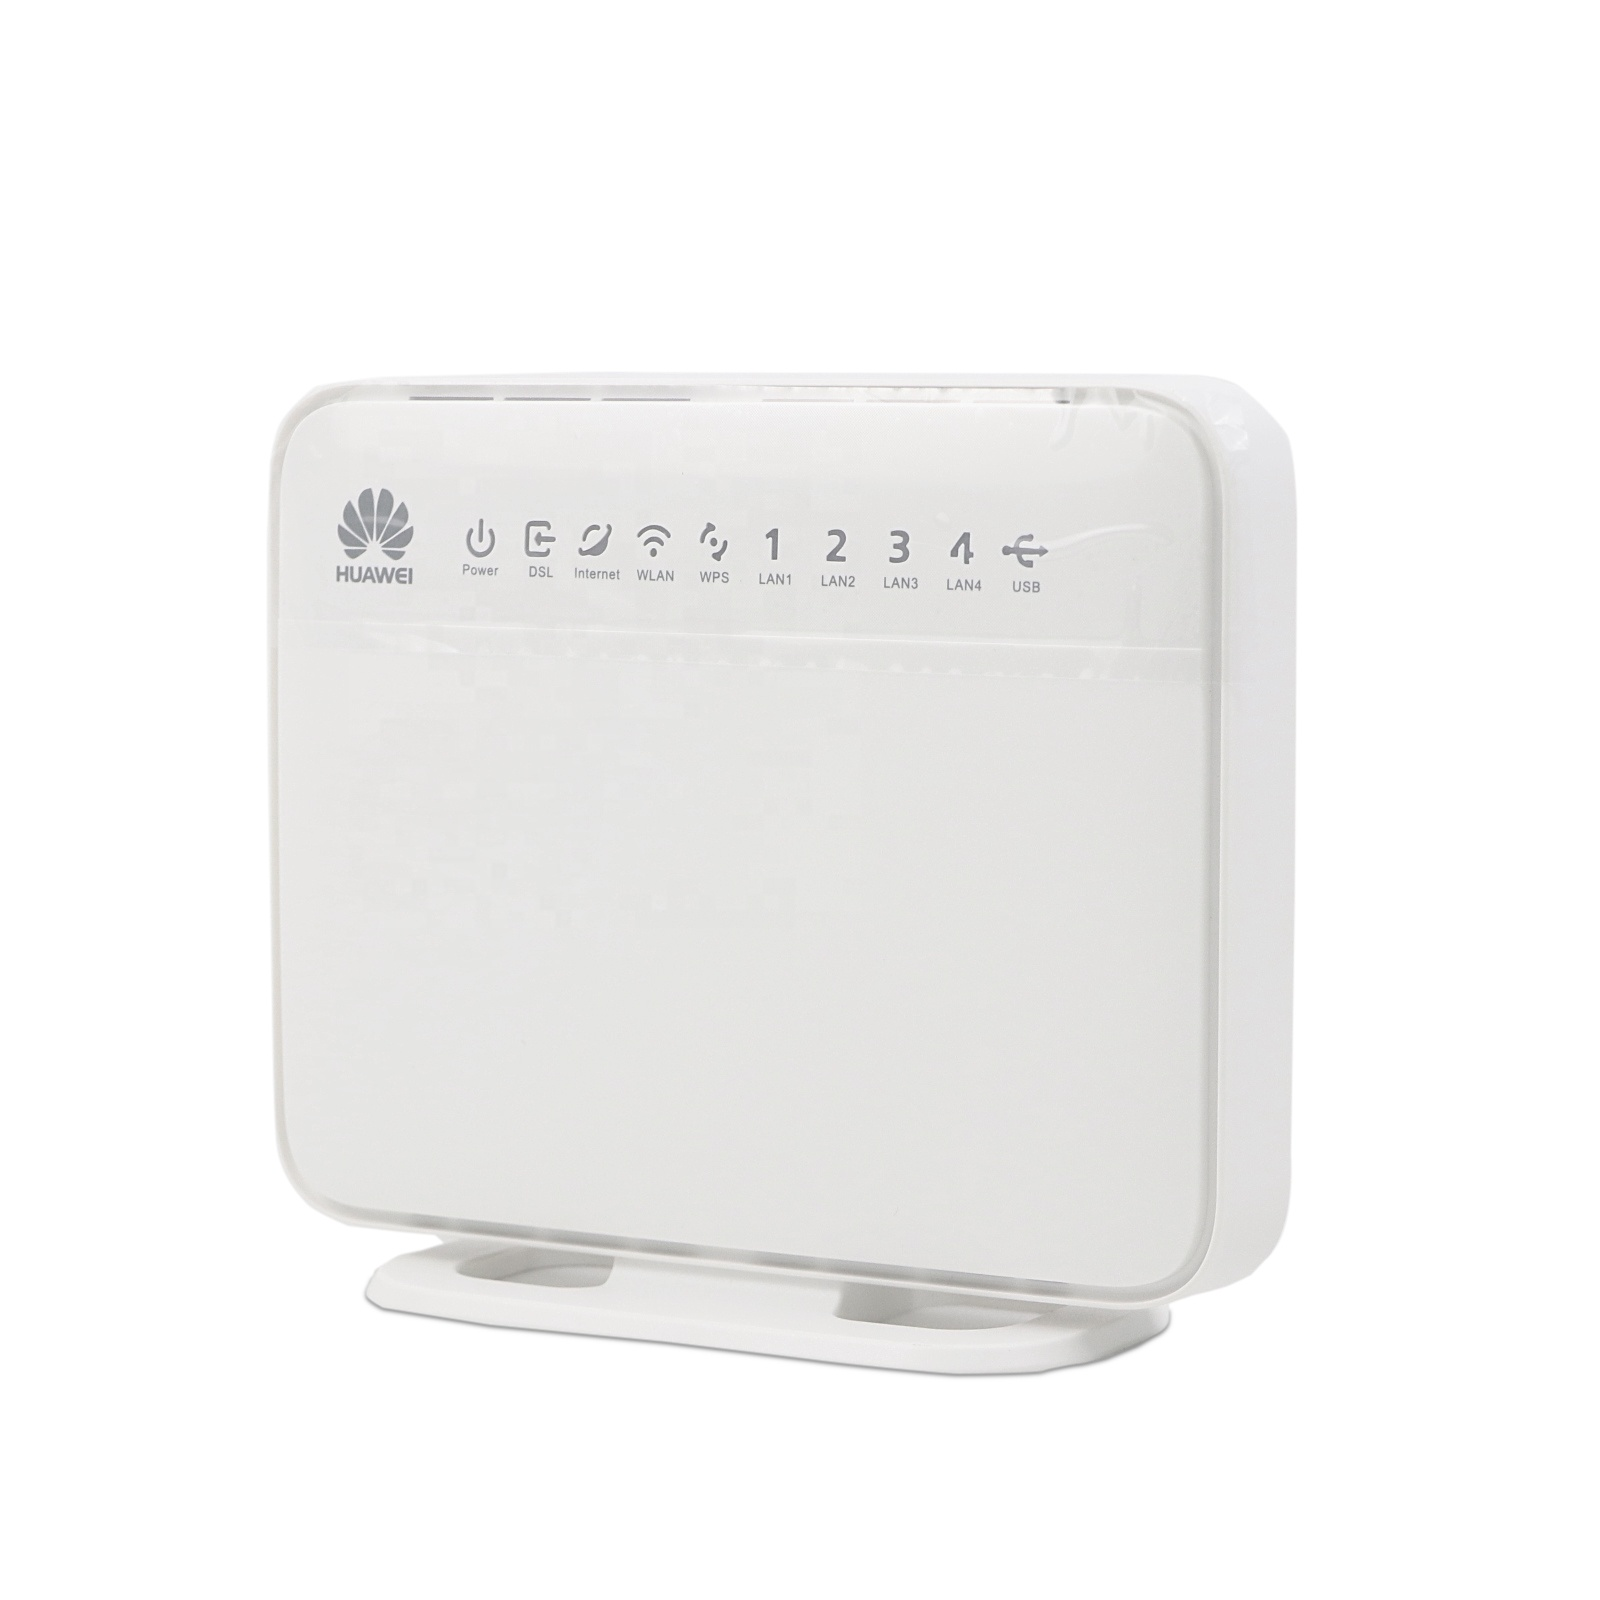 ที่ดีที่สุดราคา Huawei wireless router HG630 ADSL/VDSL2/ADSL2 + Modem